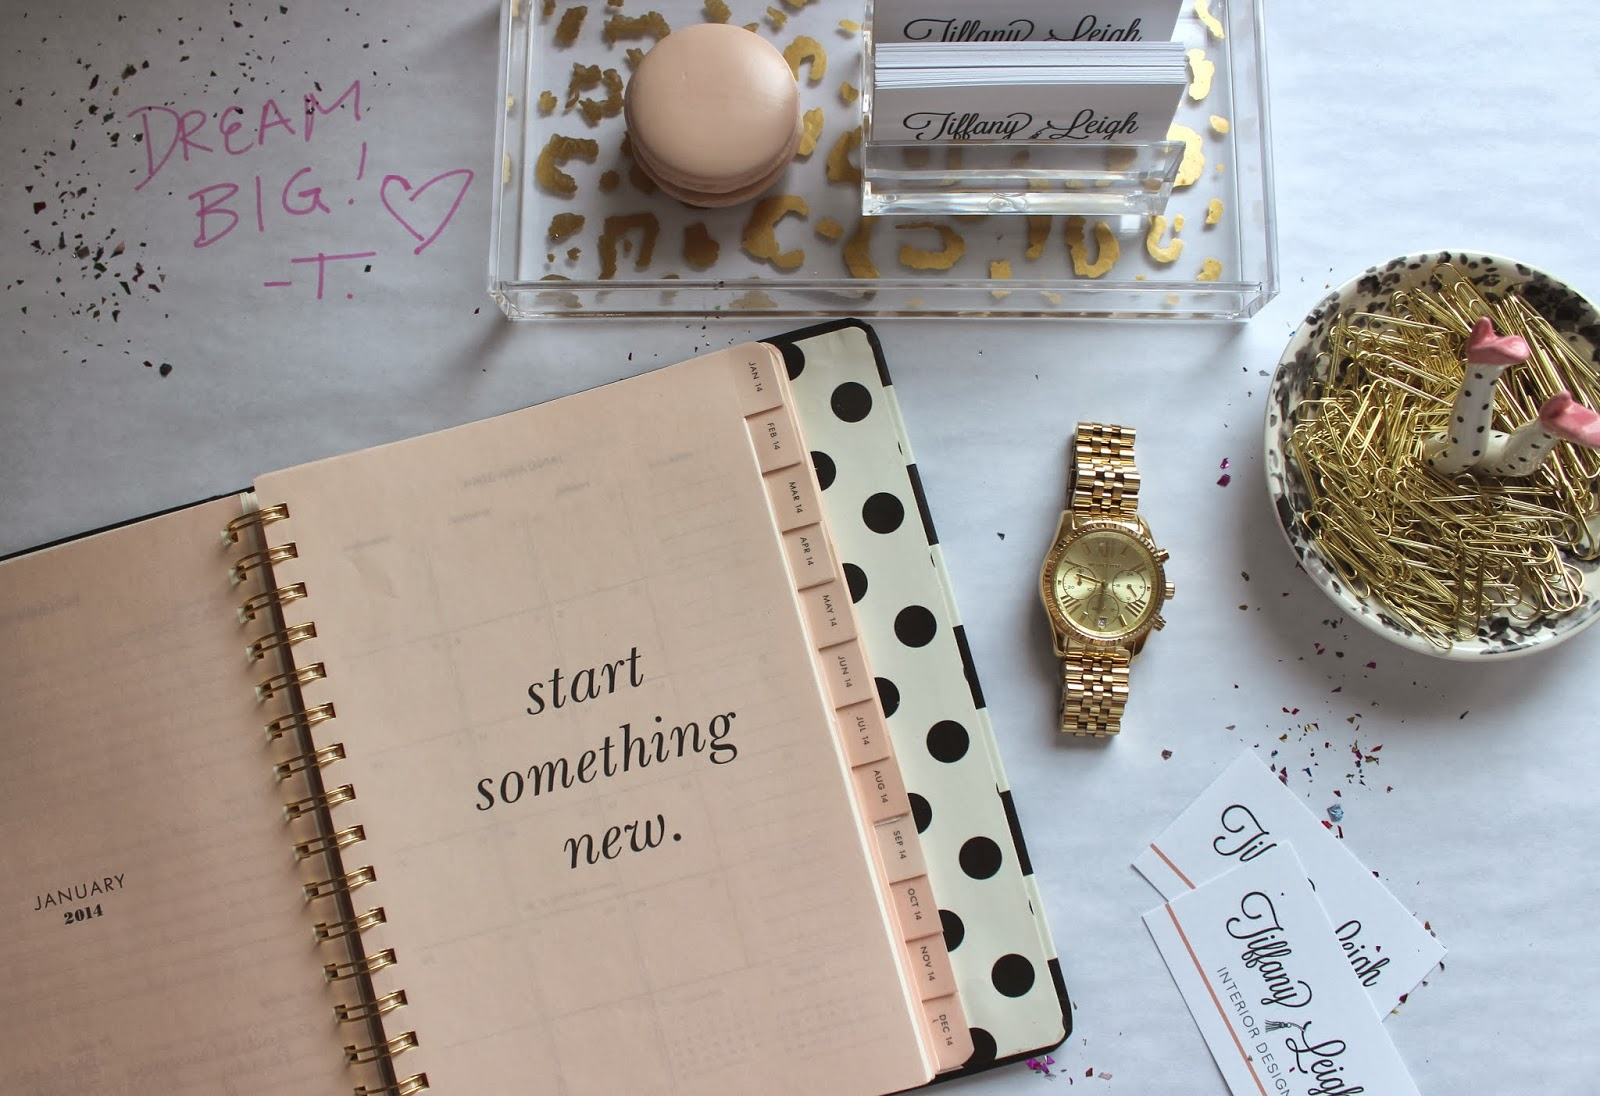 tiffany leigh interior design new year new goals 2014 time to fill this planner up big ideas big dreams and big hopes for the next twelve months what are some of your major goals